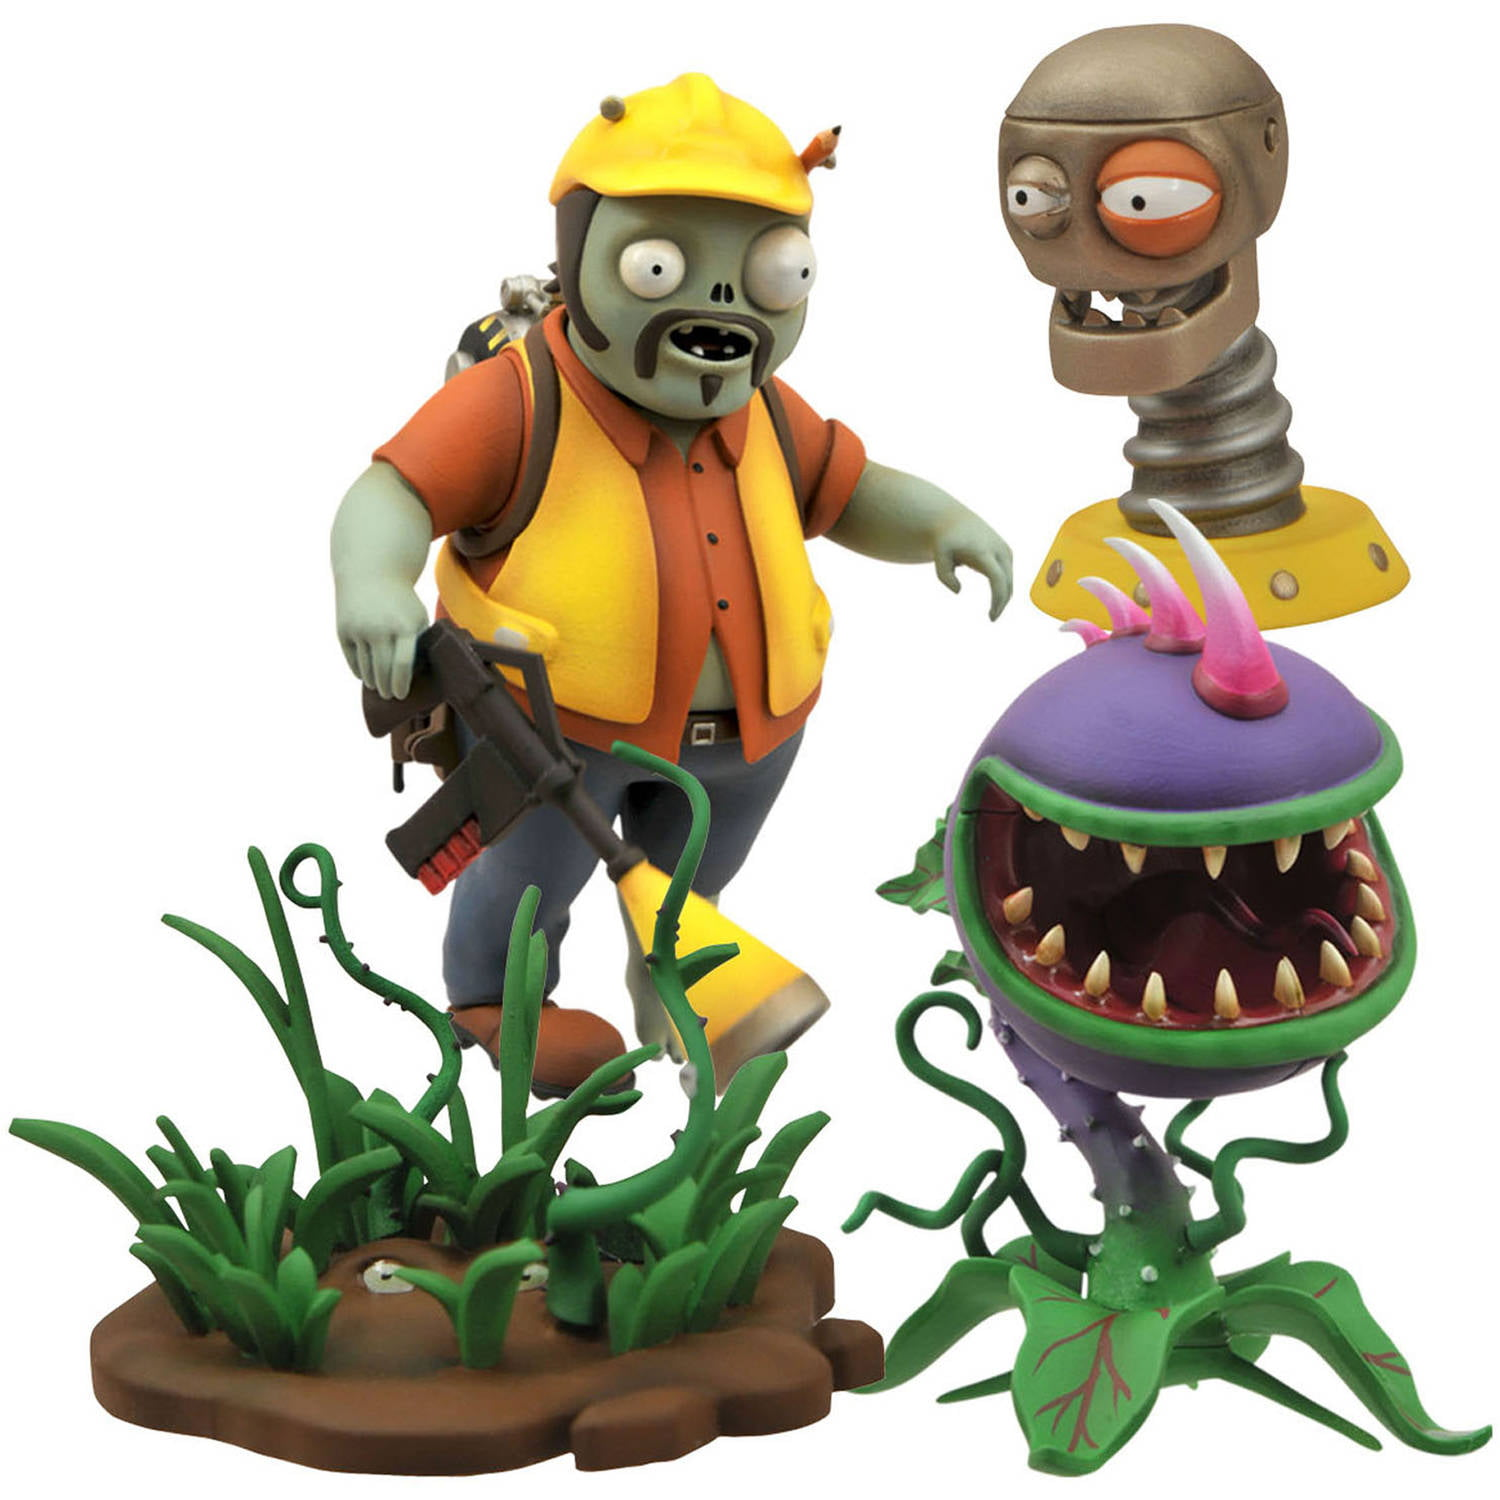 Fish tank decorations zombie - Diamond Select Toys Plants Vs Zombies Select Engineer Zombie Action Figure Walmart Com